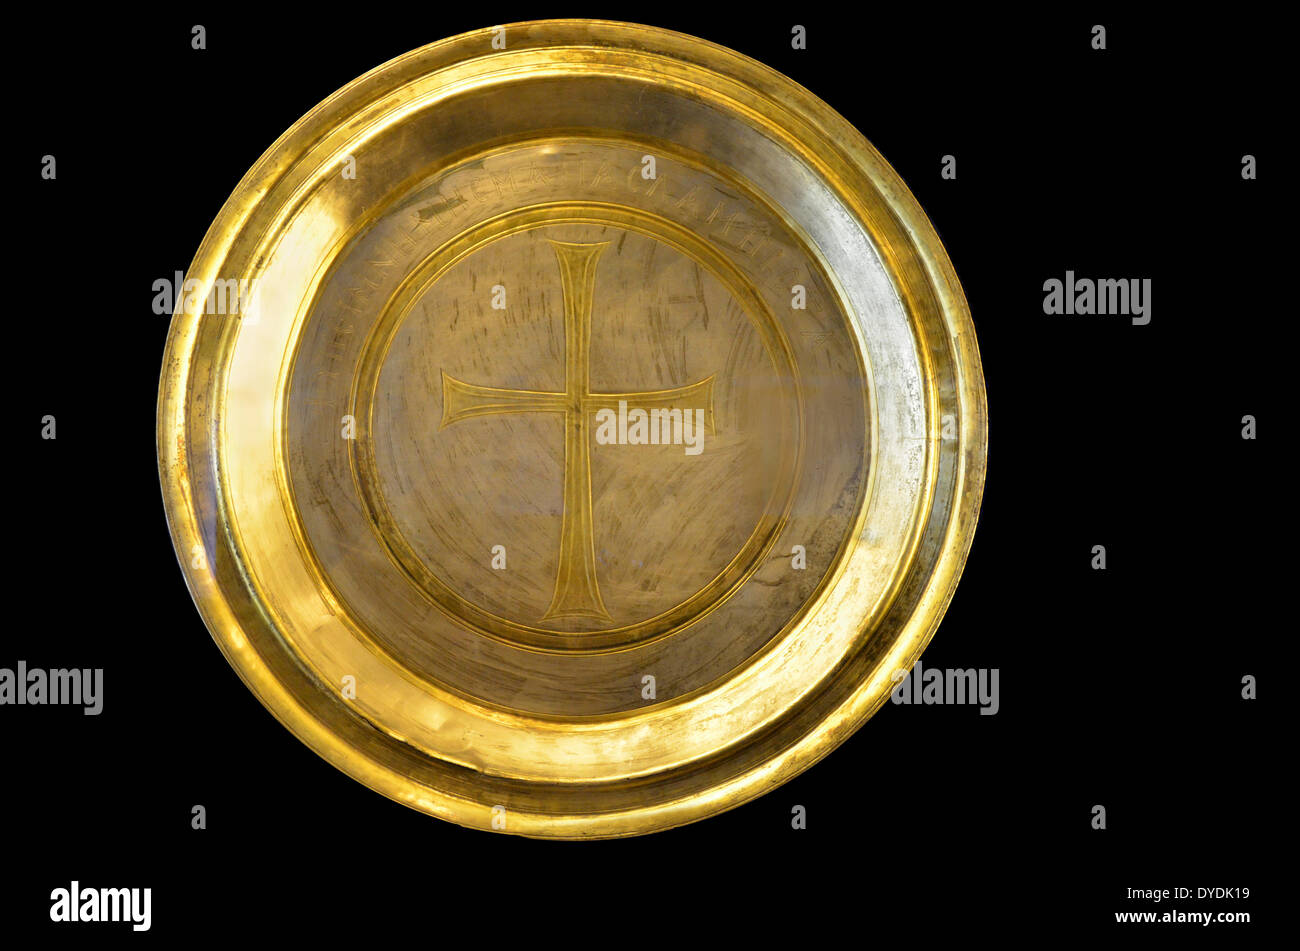 treasure wealth money wealthy rich gold Greece Europe ancient Greece fortune richness riches ancient treasure trove - Stock Image